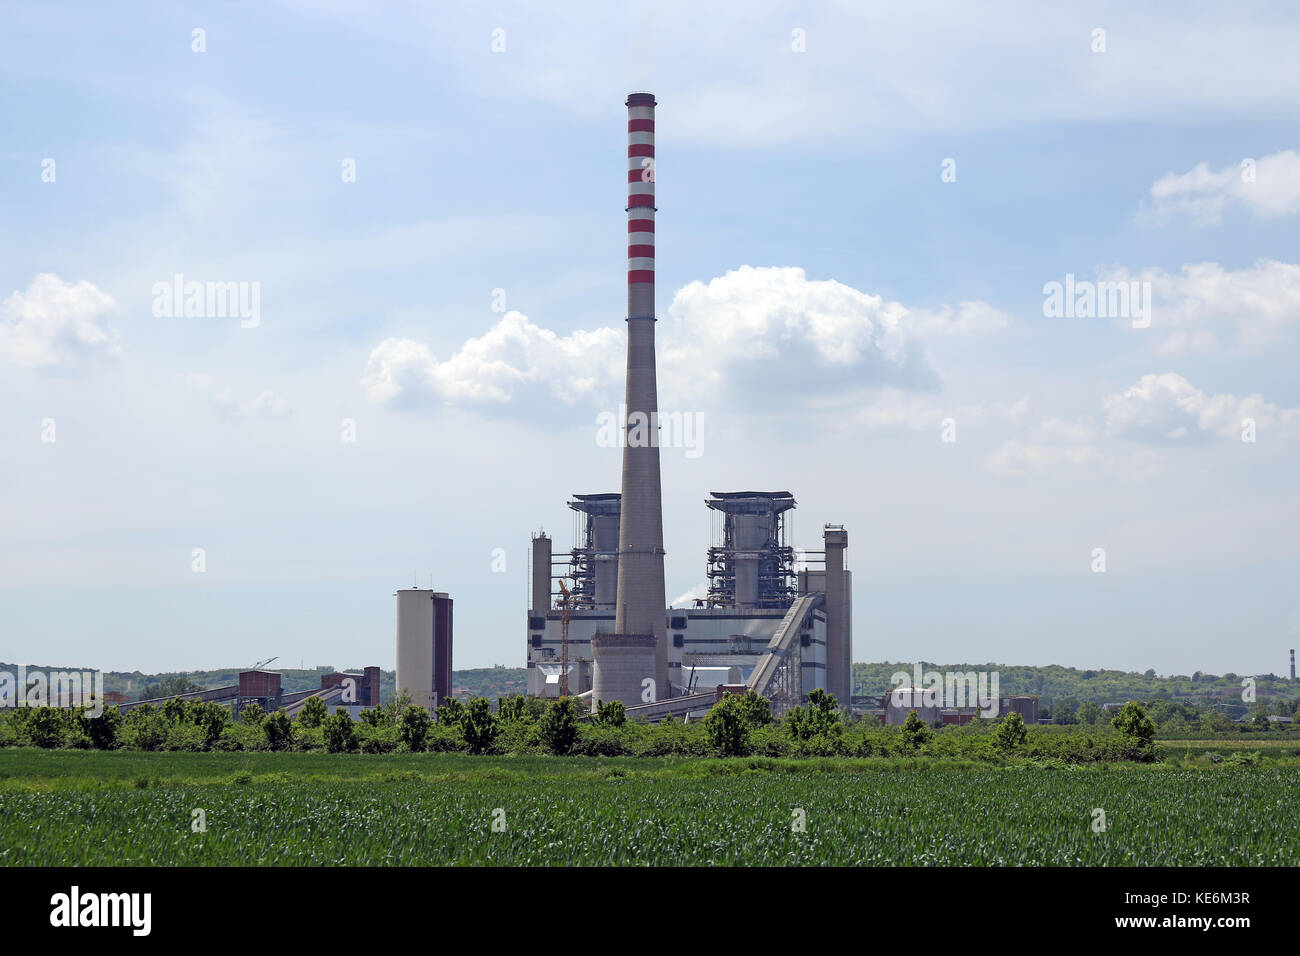 thermal power plant power and energy industry - Stock Image